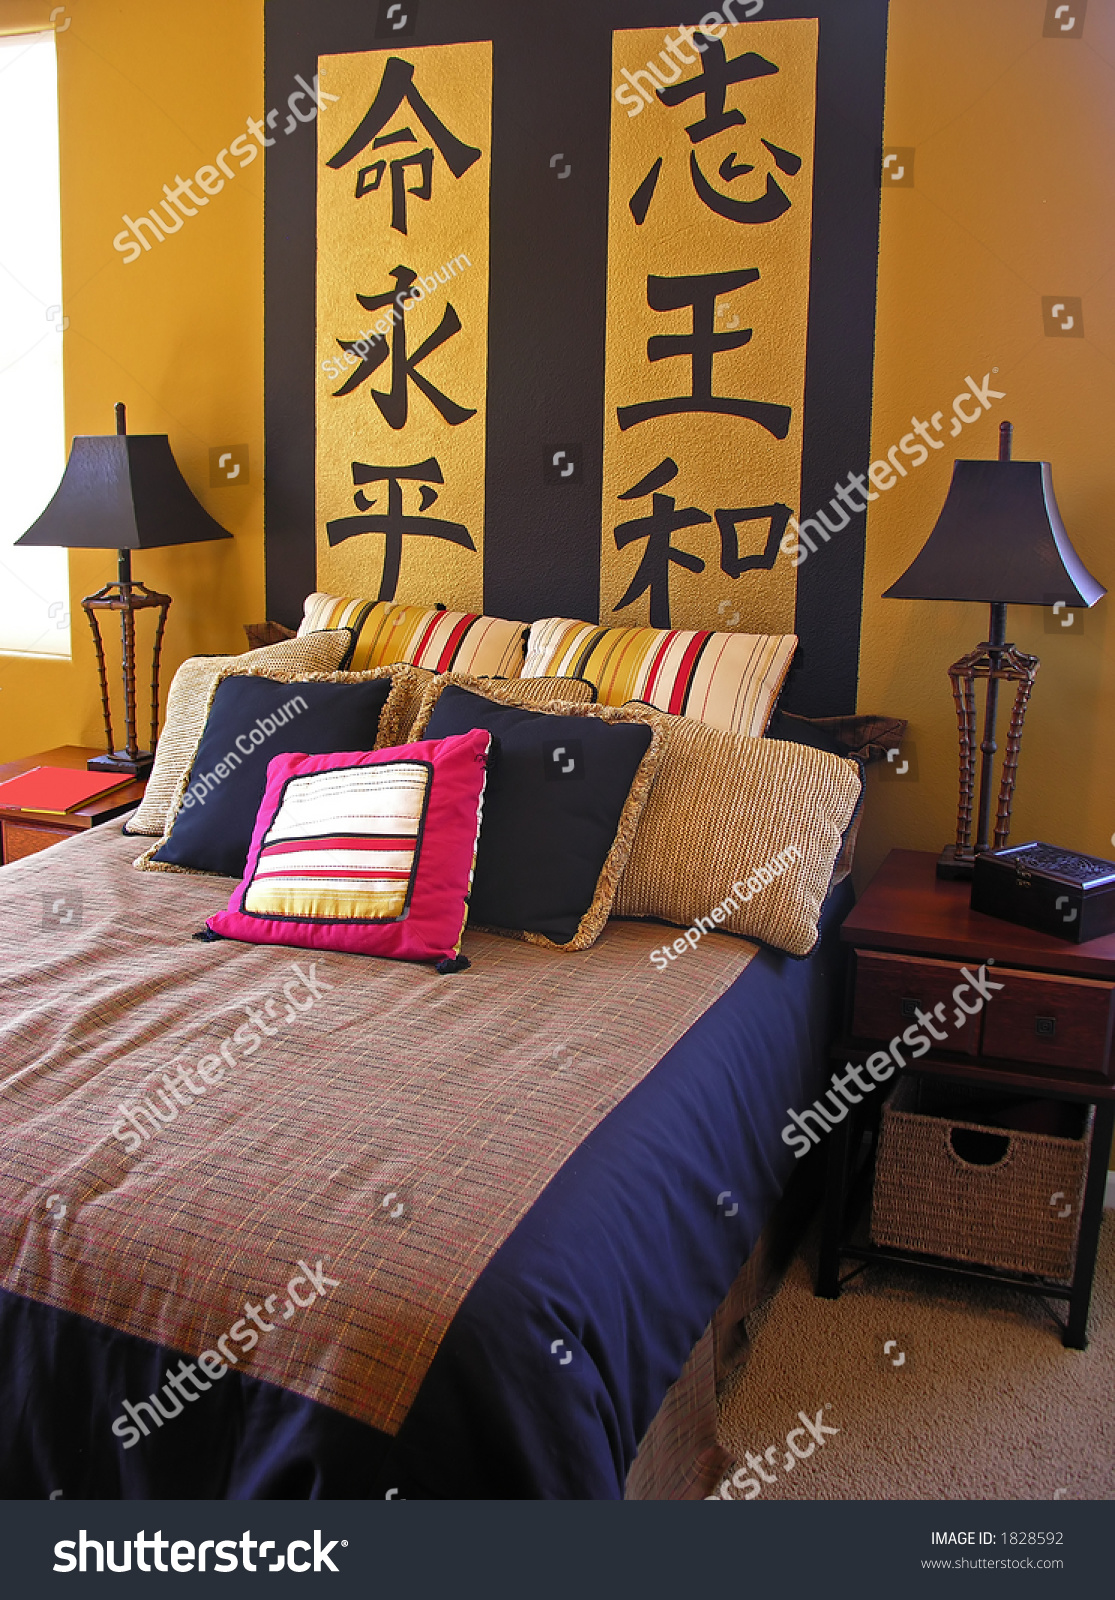 Asian Themed Bedroom Interior Inside A Home